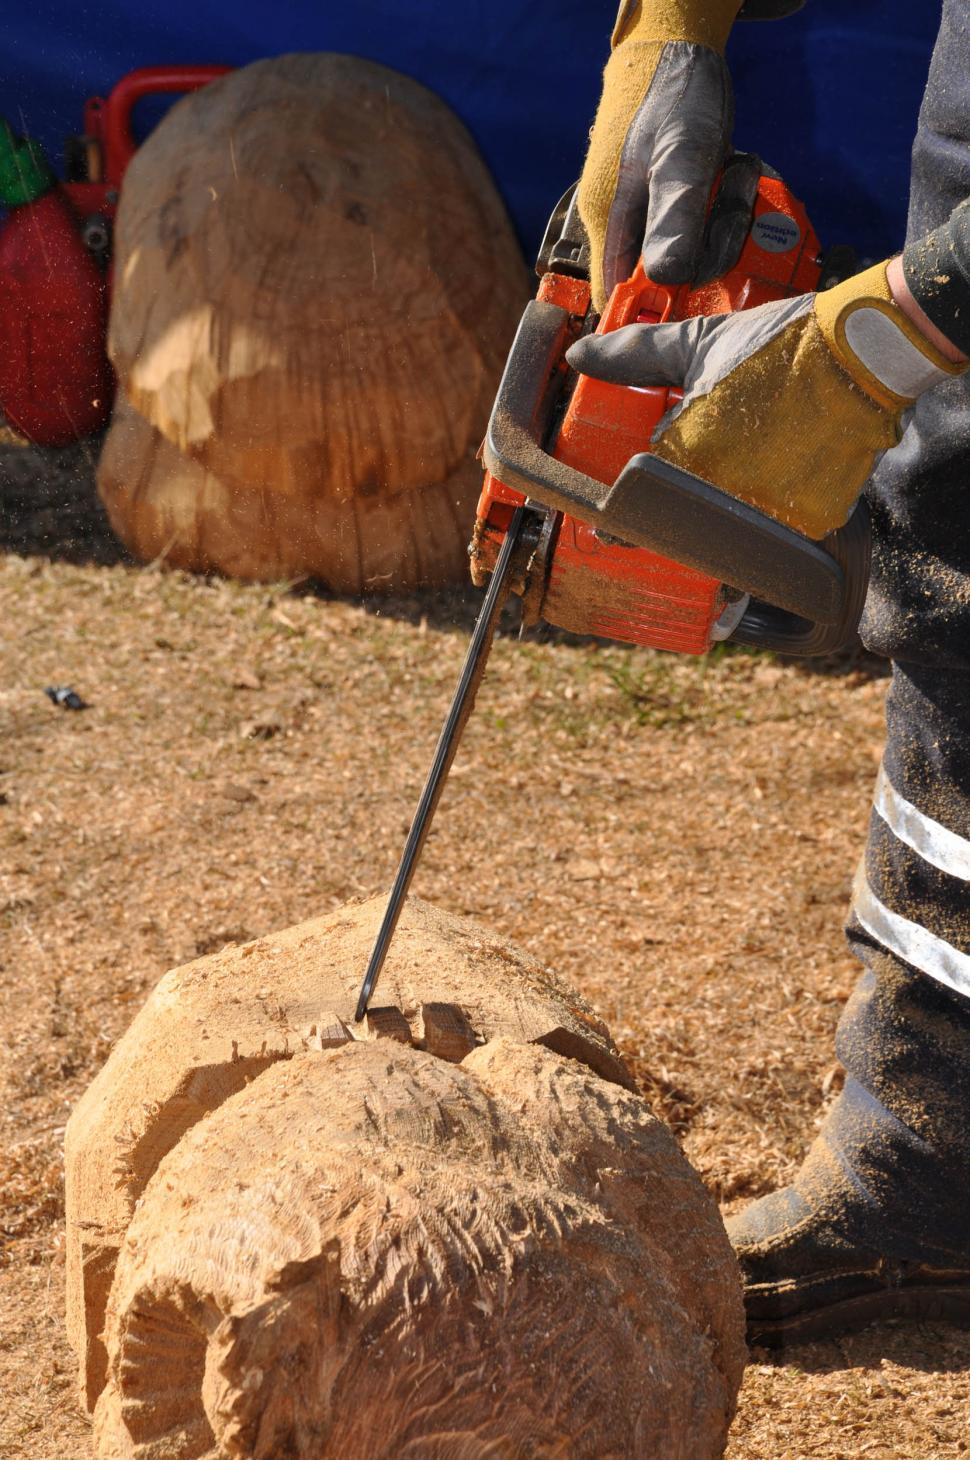 Download Free Stock HD Photo of Craftsman is working with chainsaw Online